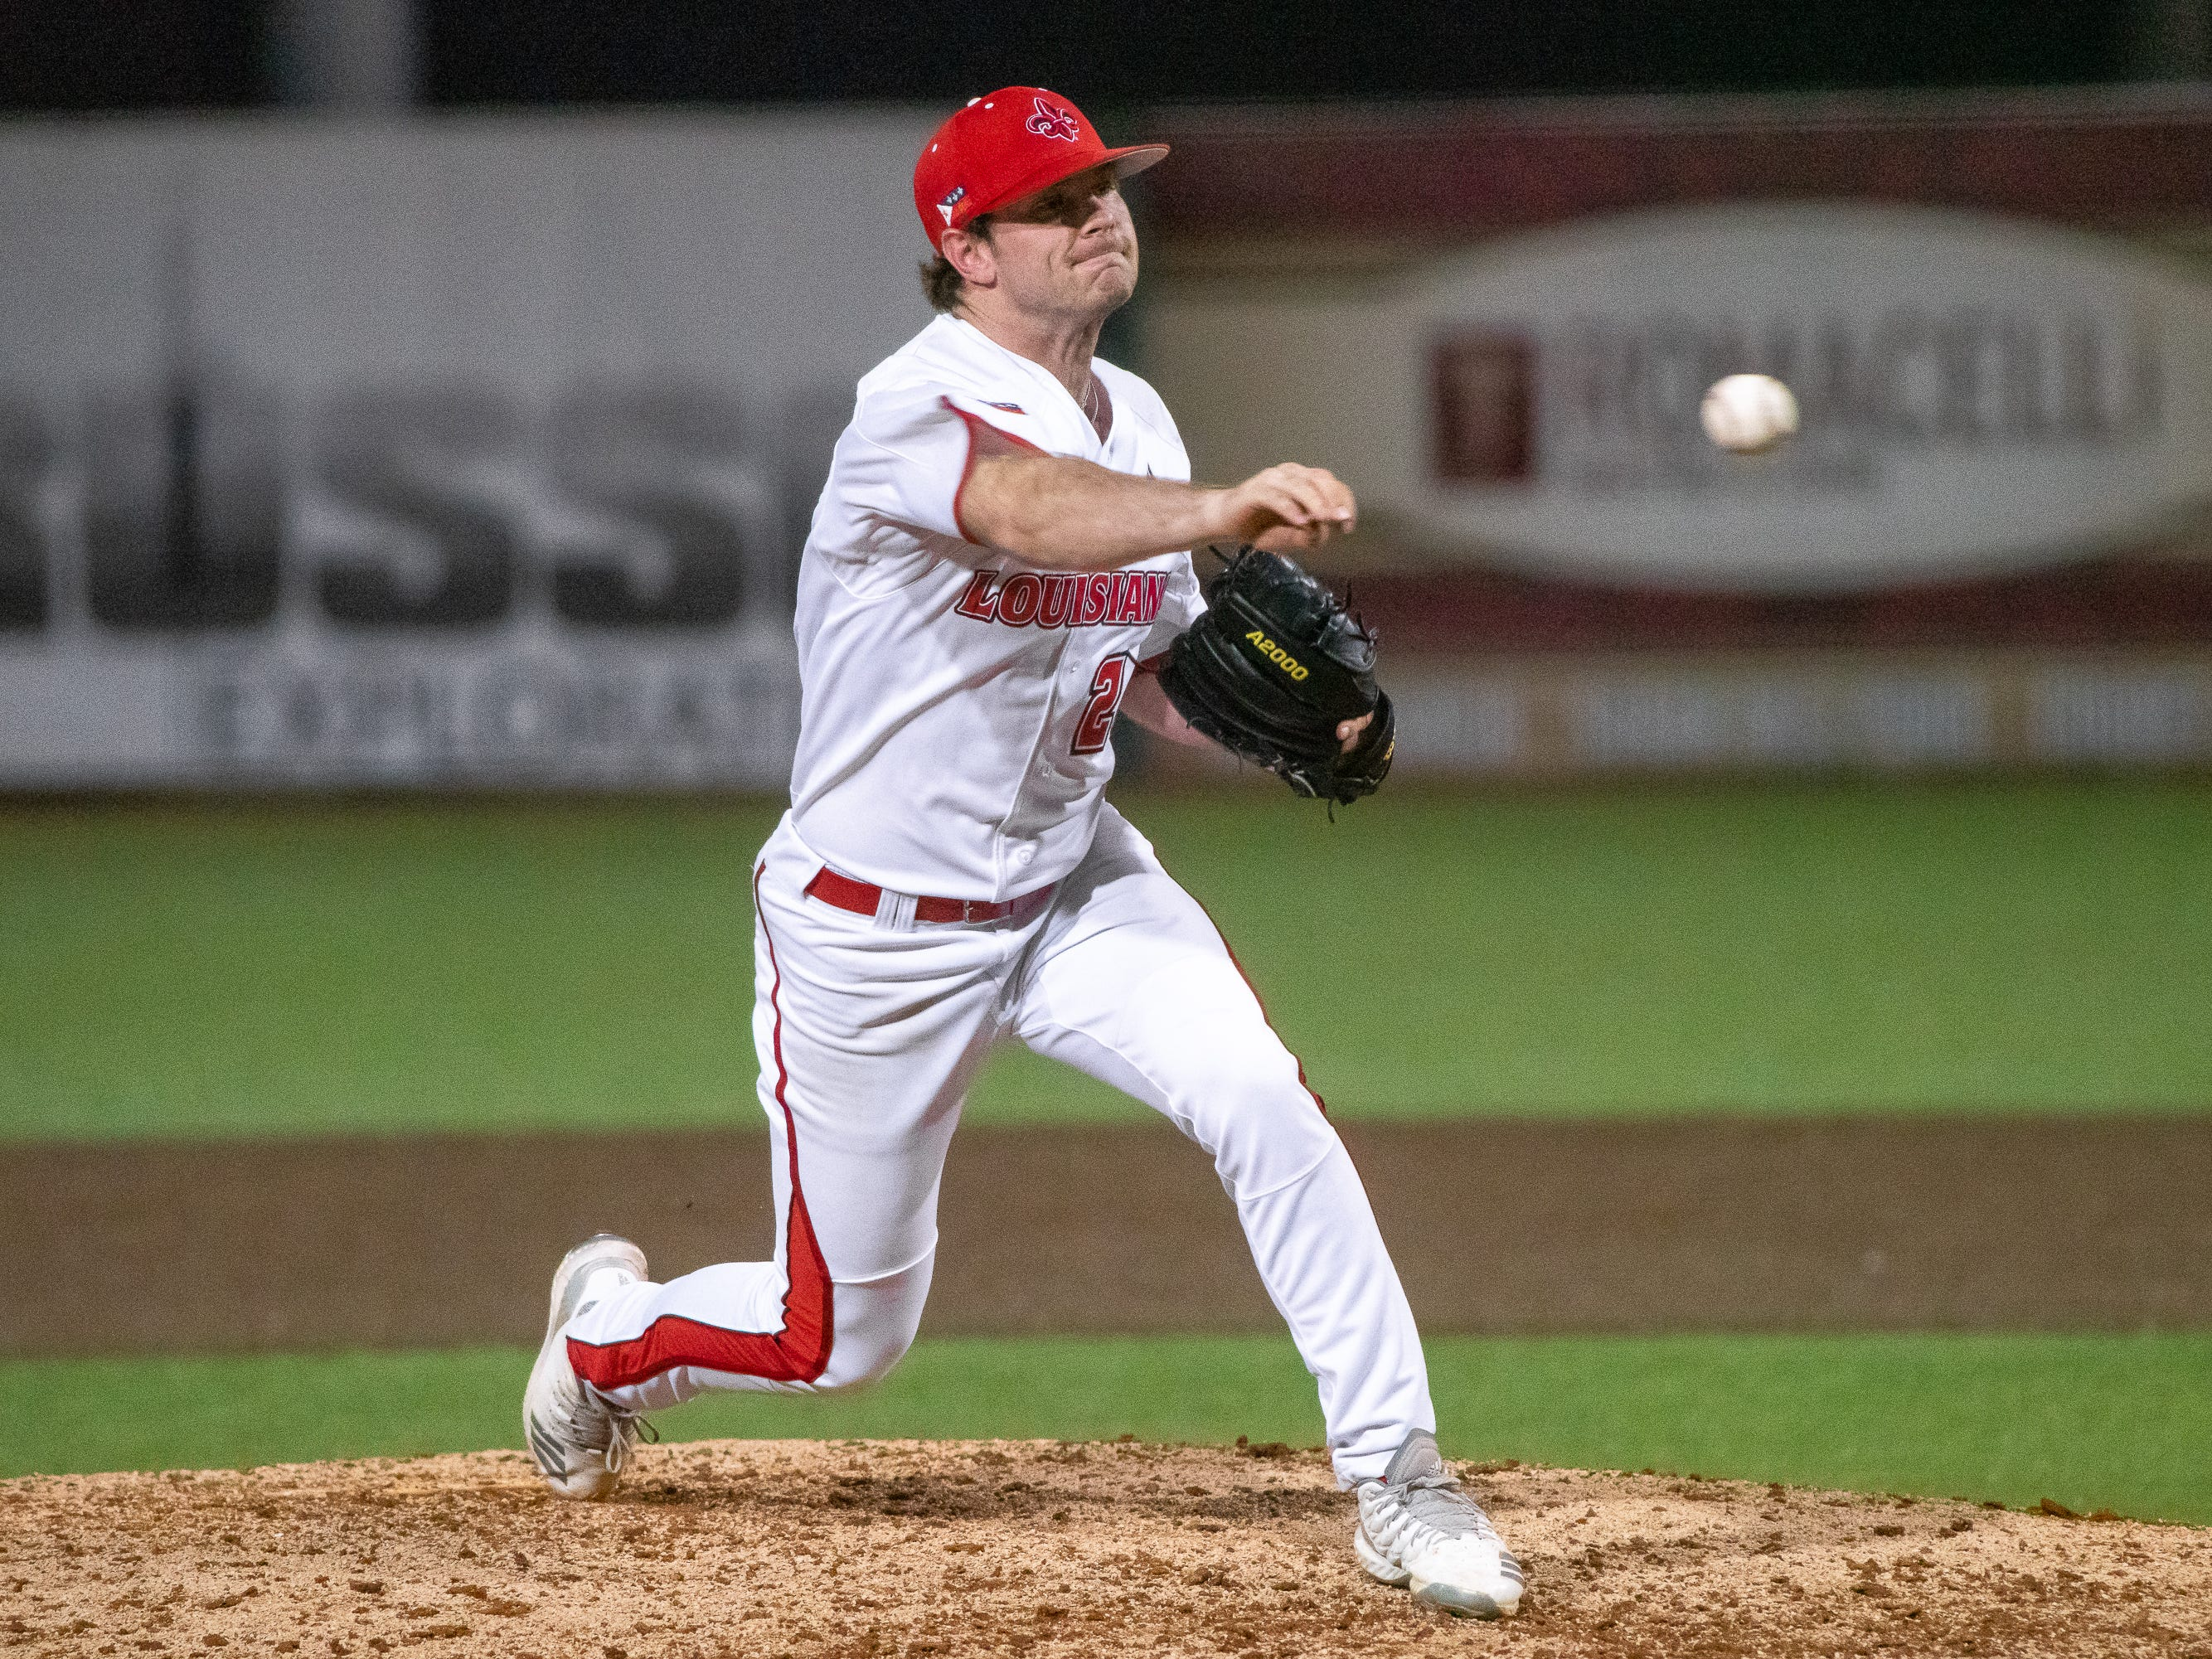 """UL's pitcher Caleb Armstrong throws the ball from the mound as the Ragin' Cajuns take on the Southern Miss Golden Eagles at M.L. """"Tigue"""" Moore Field on Wednesday, March 13, 2019."""